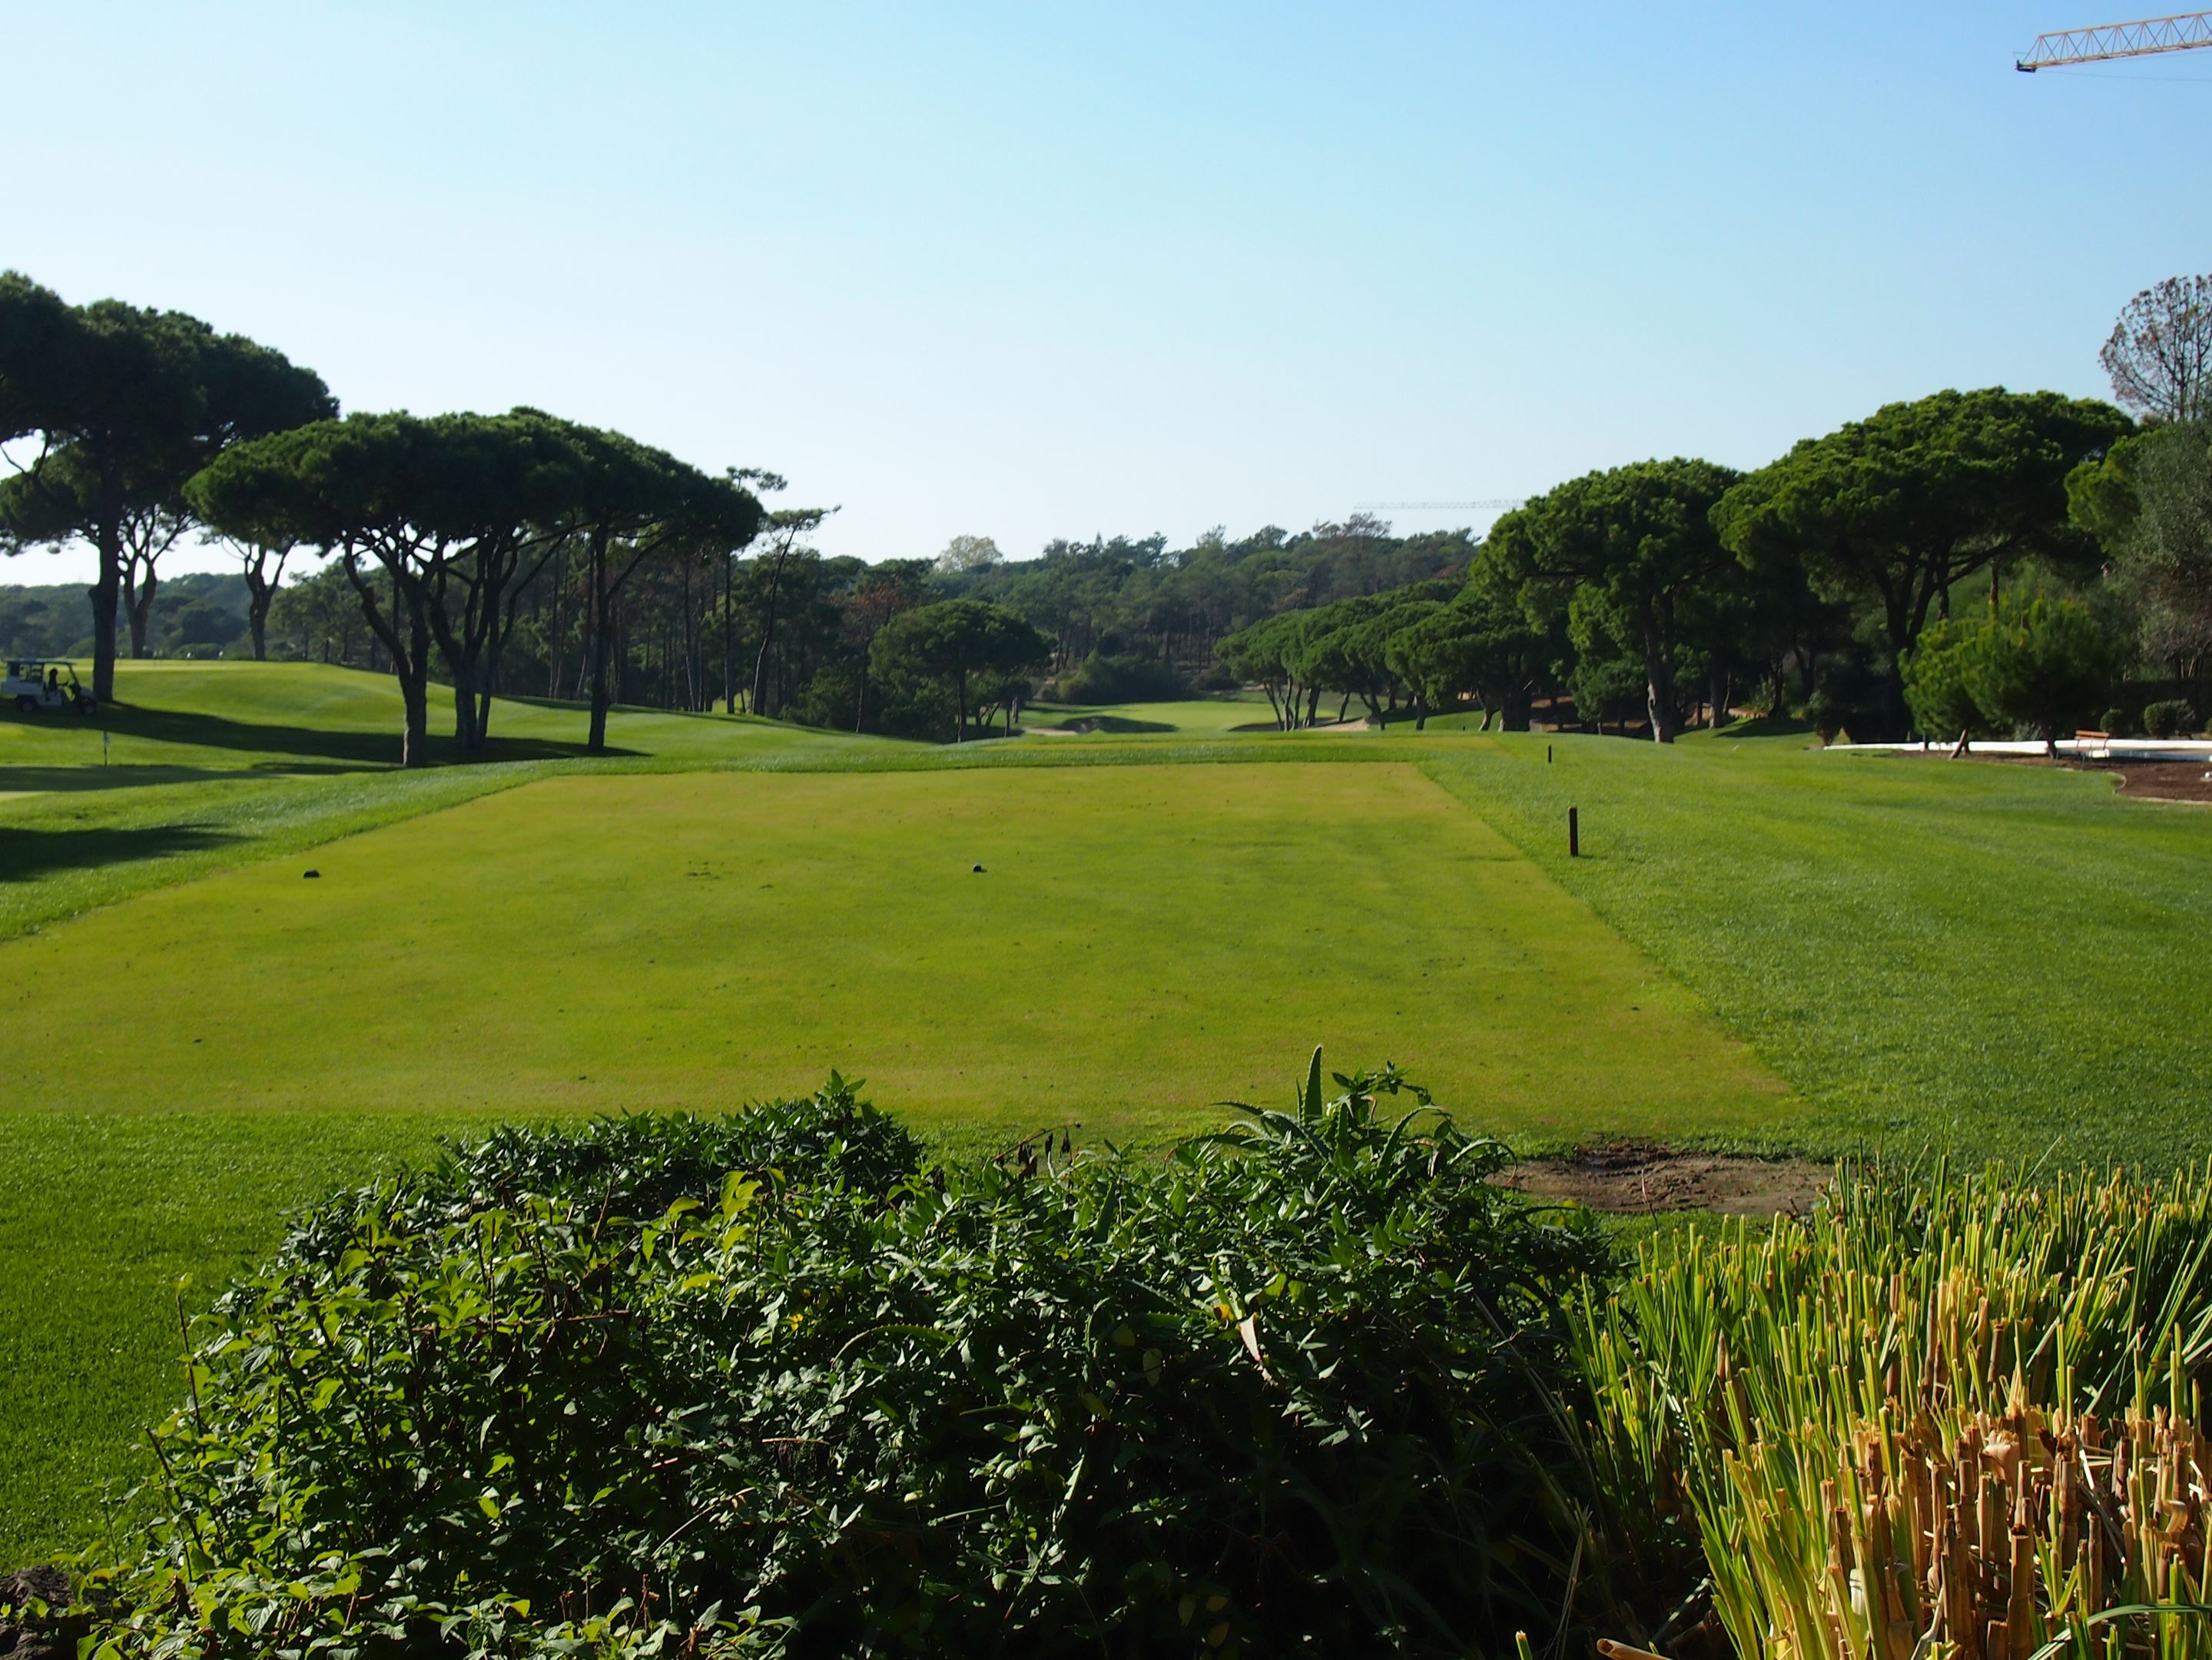 Campo de golf Quinta do Lago